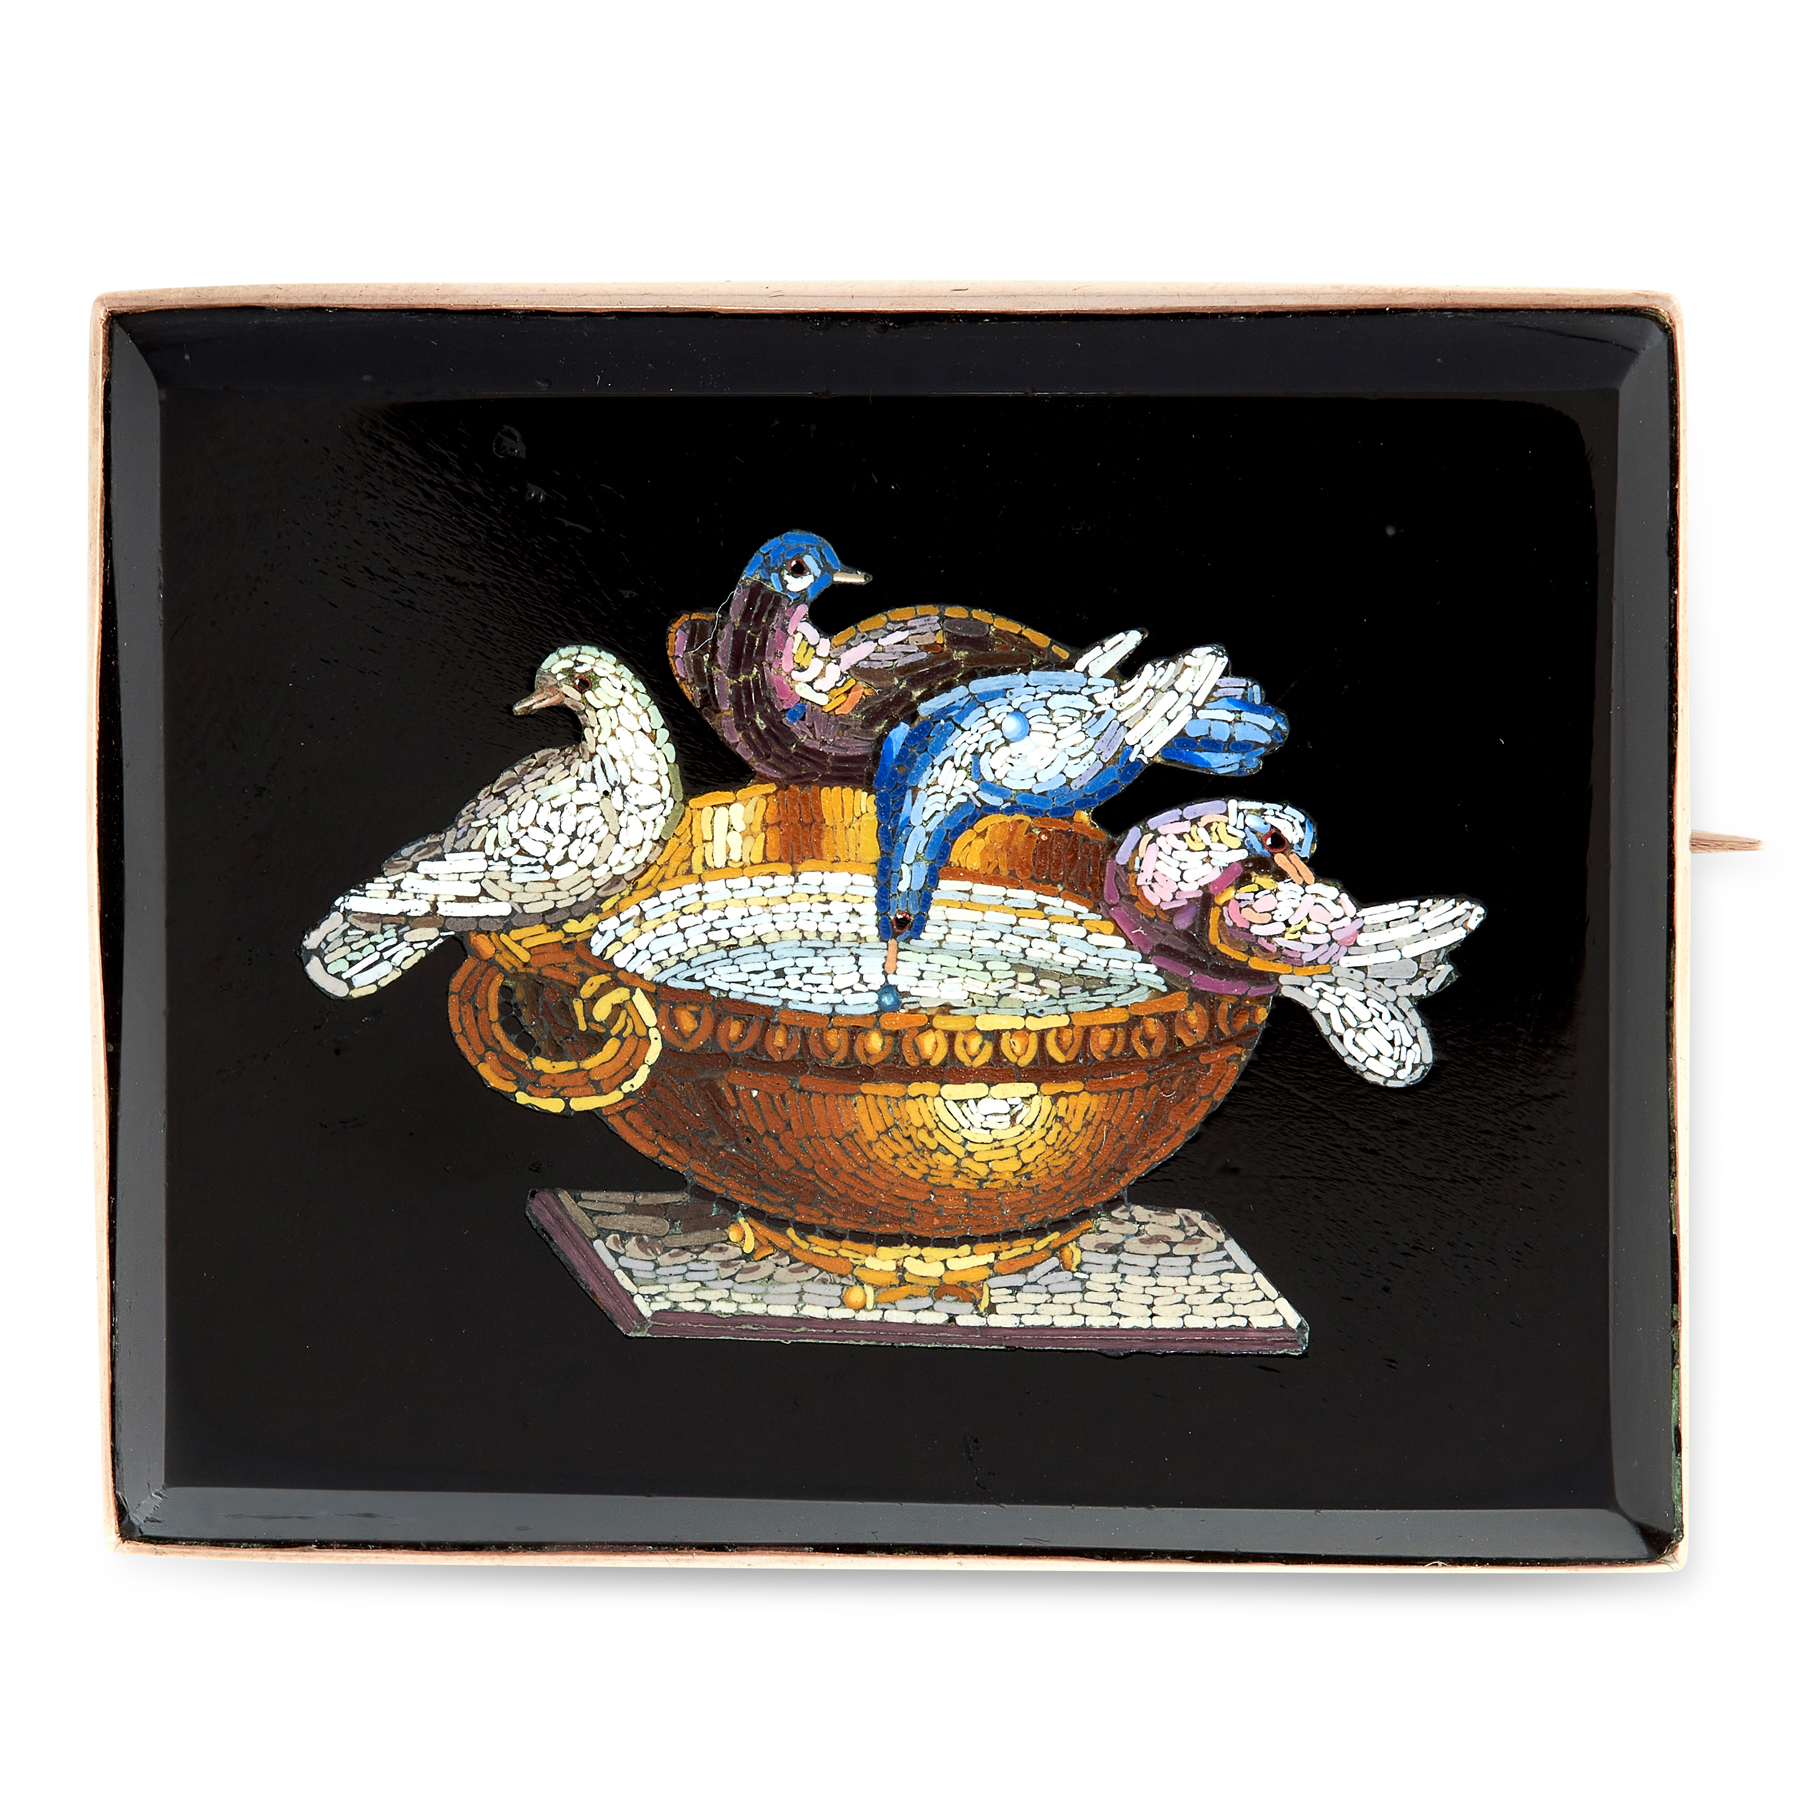 AN ANTIQUE MICROMOSAIC BIRD BROOCH in yellow gold, comprising of a rectangular black hardstone,